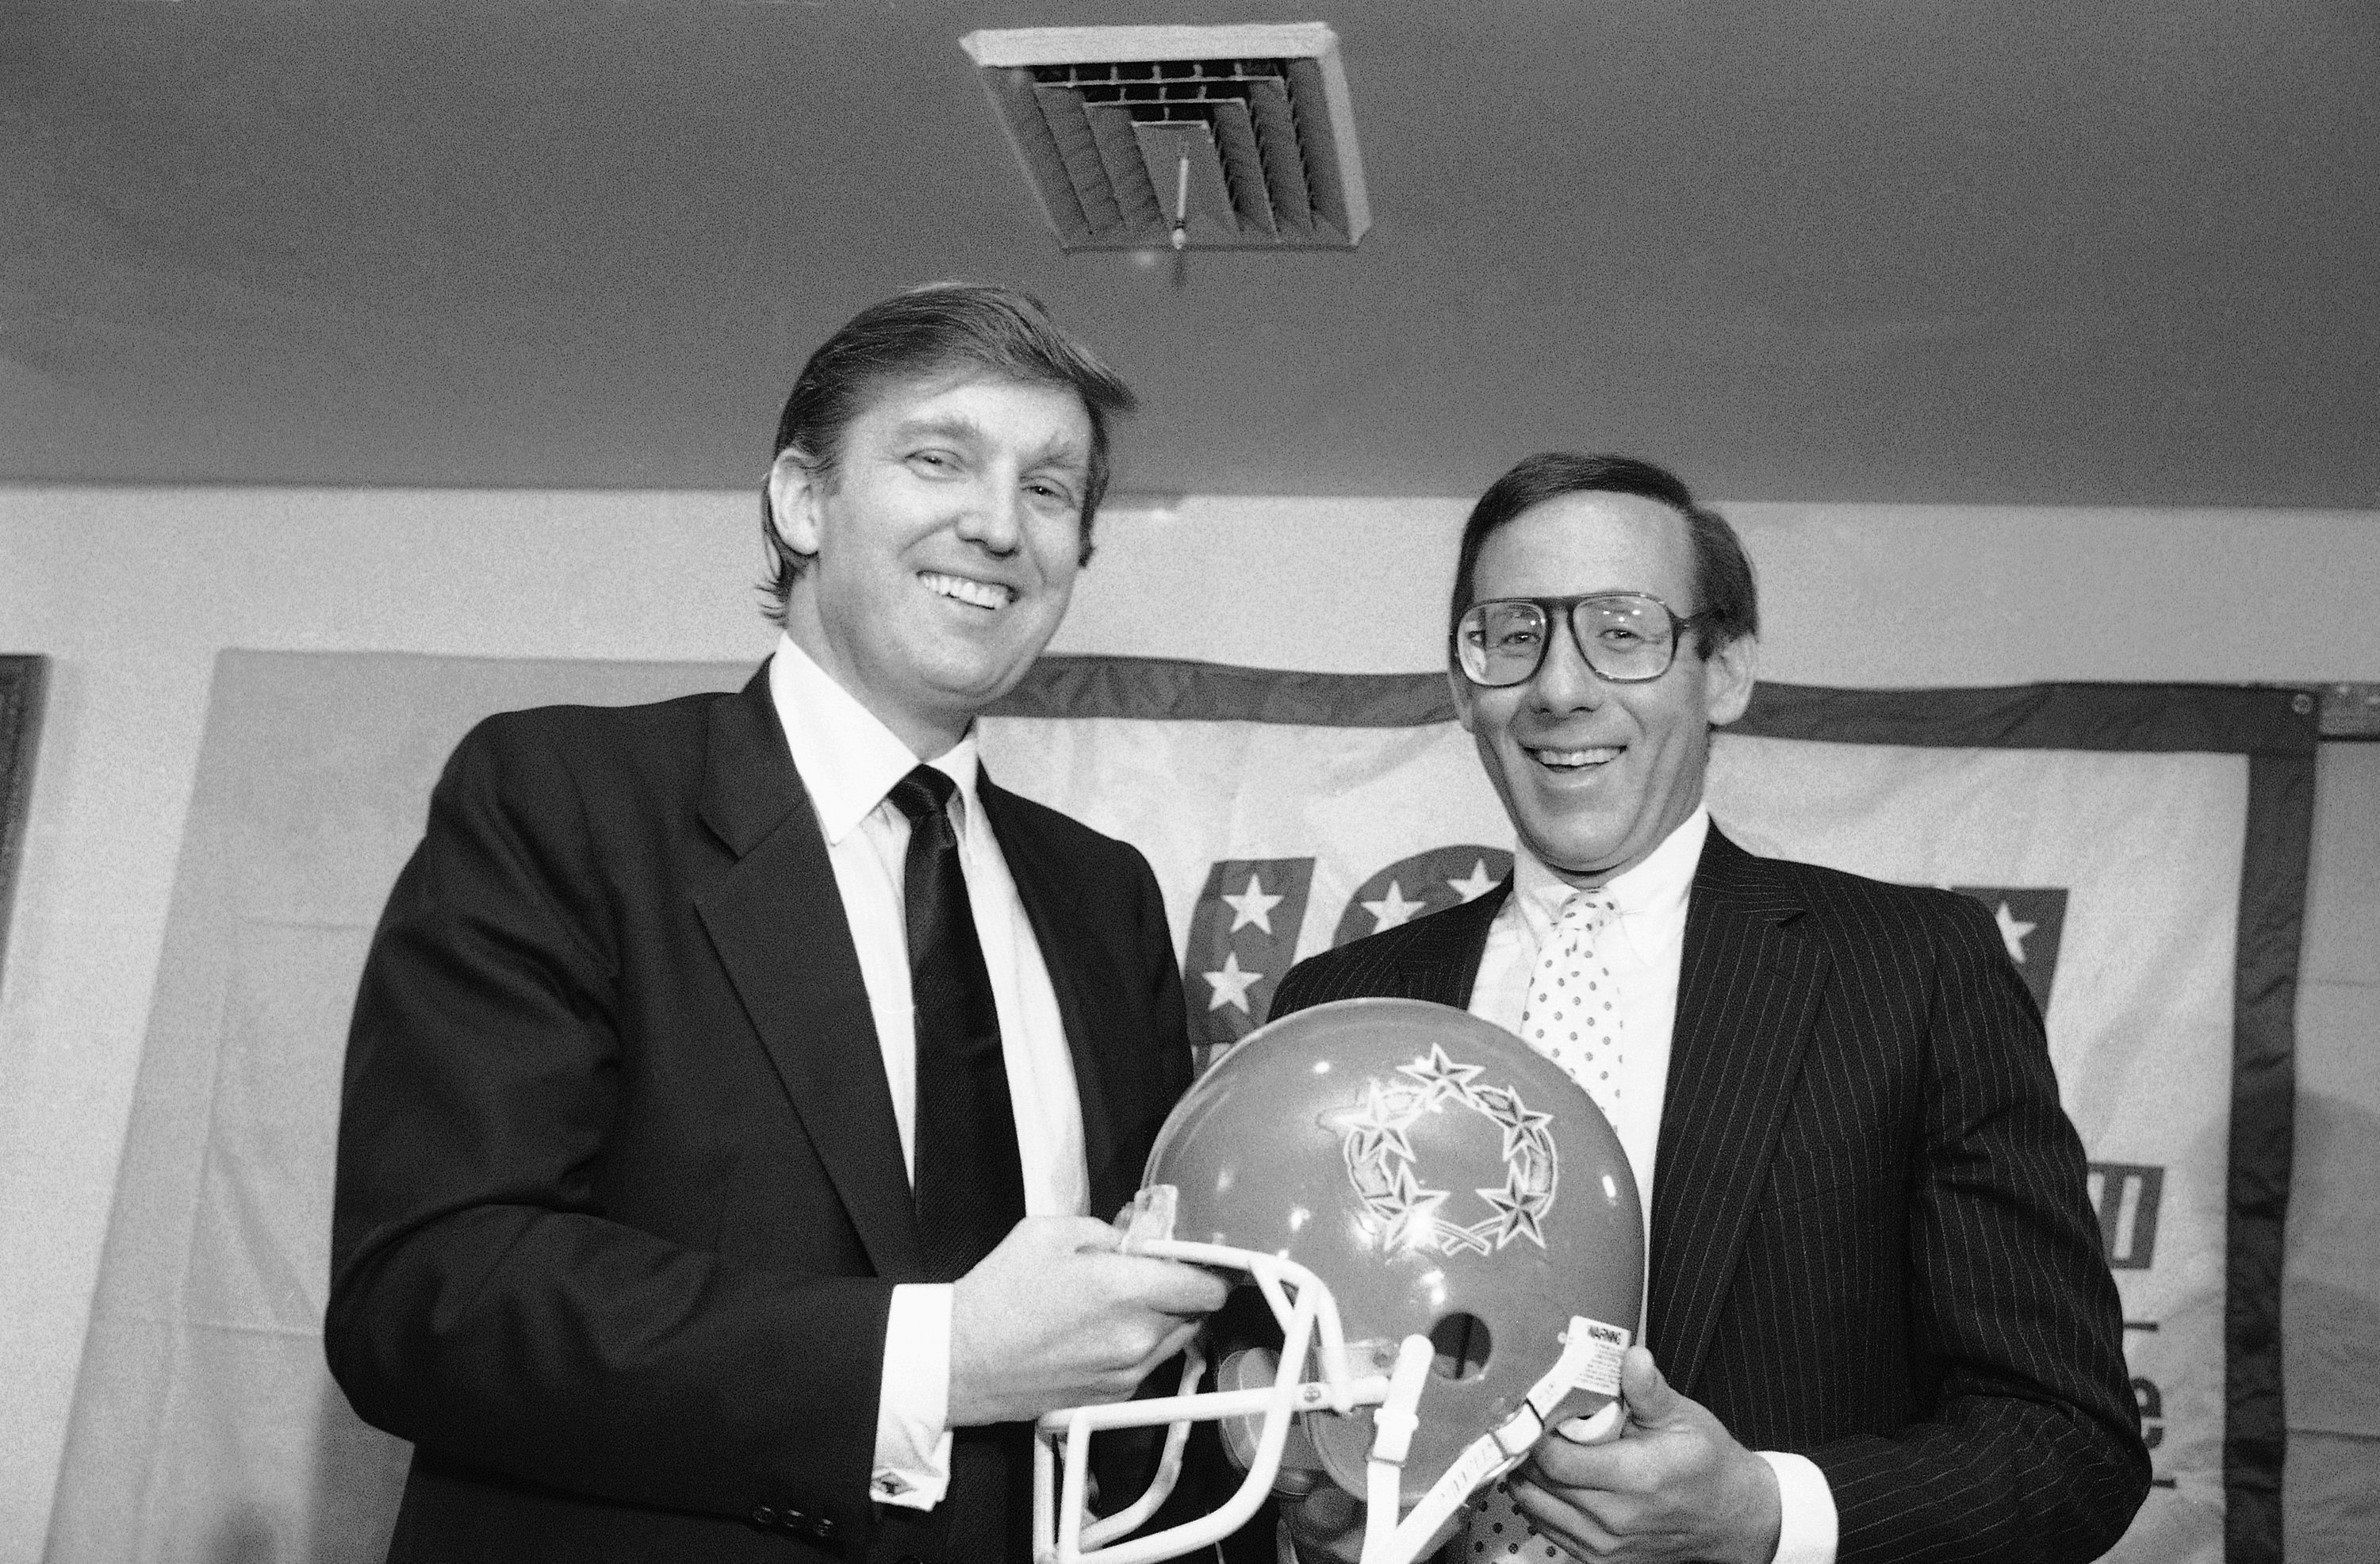 Donald Trump and Steve Ross